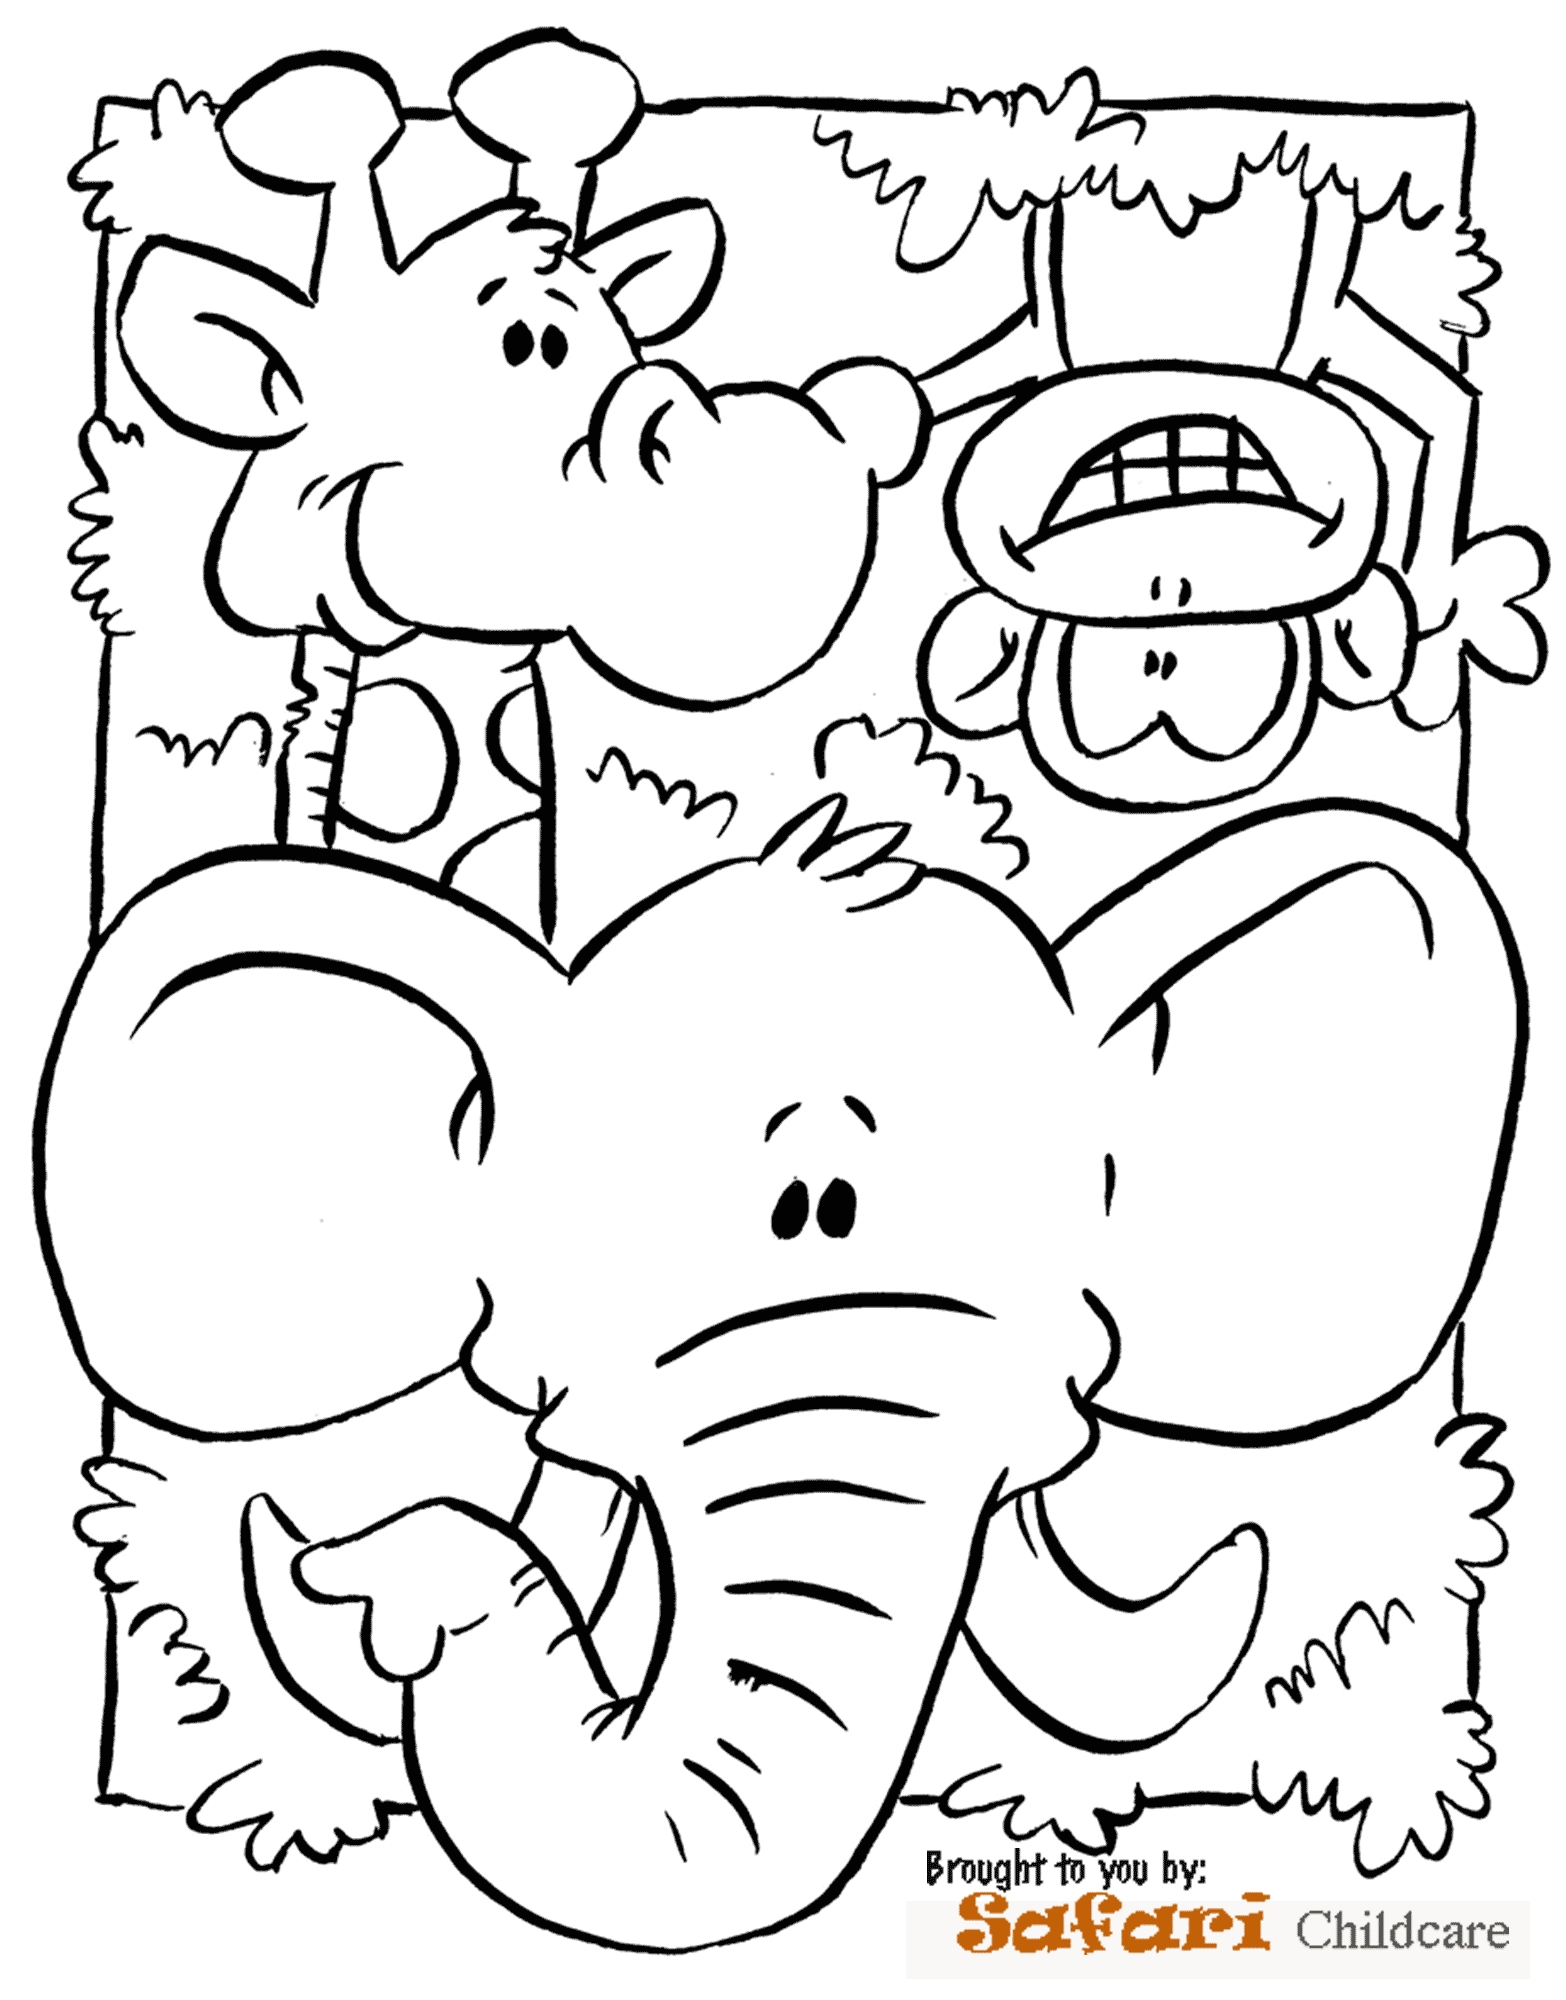 jungle safari coloring pages - Printable Scenery Coloring Pages